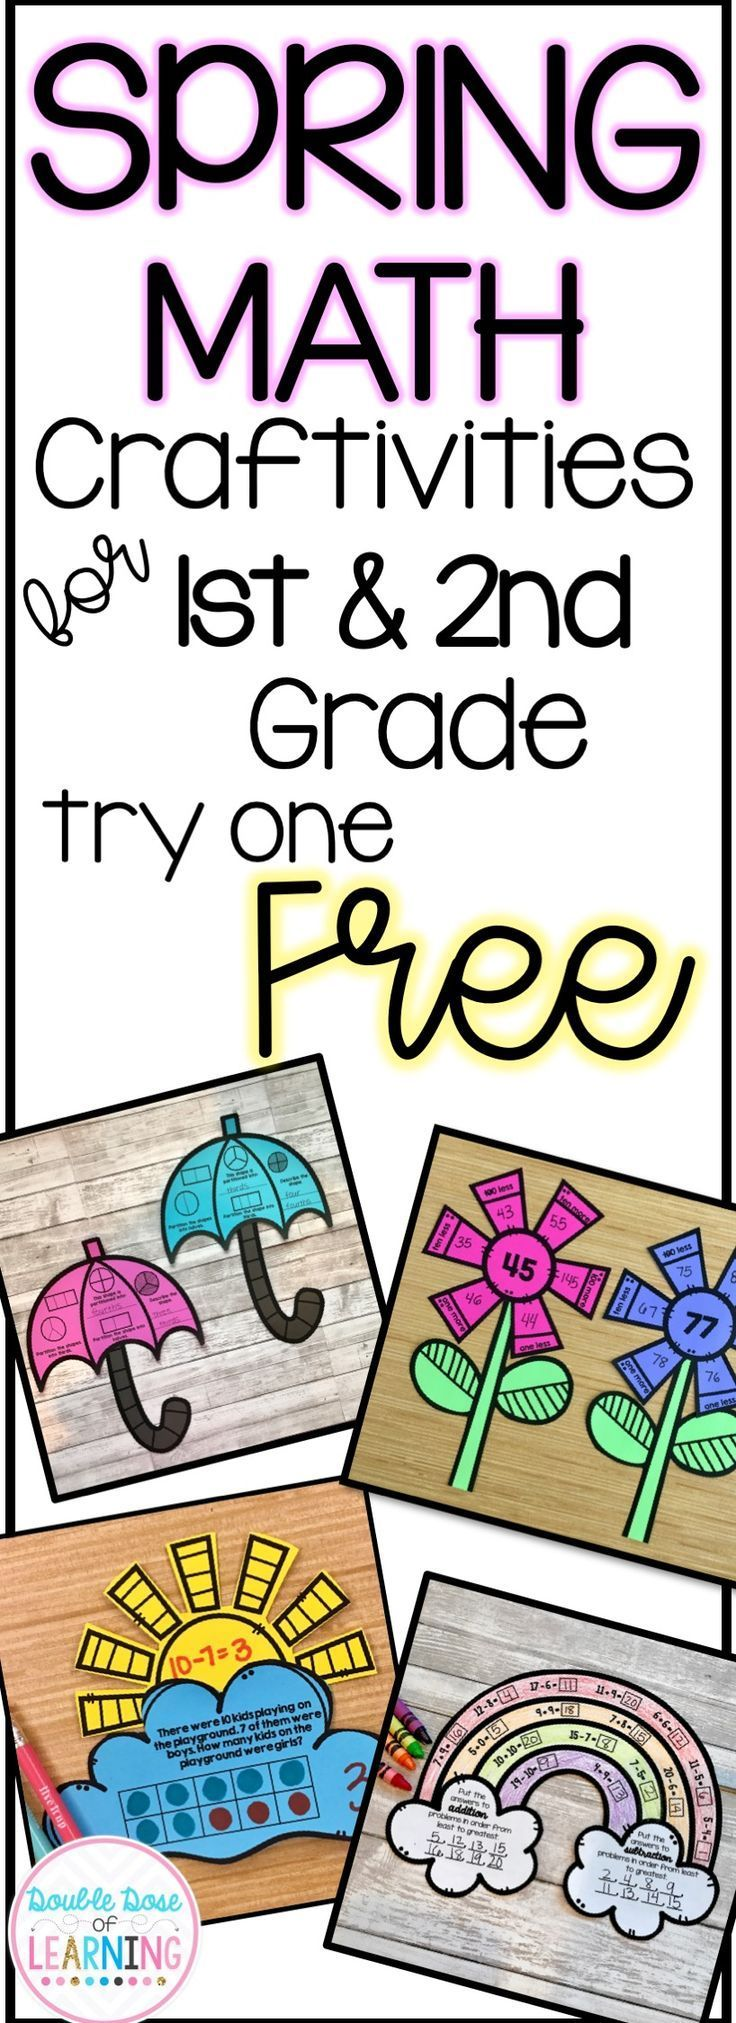 Spring Math Crafts for First and Second Grade!